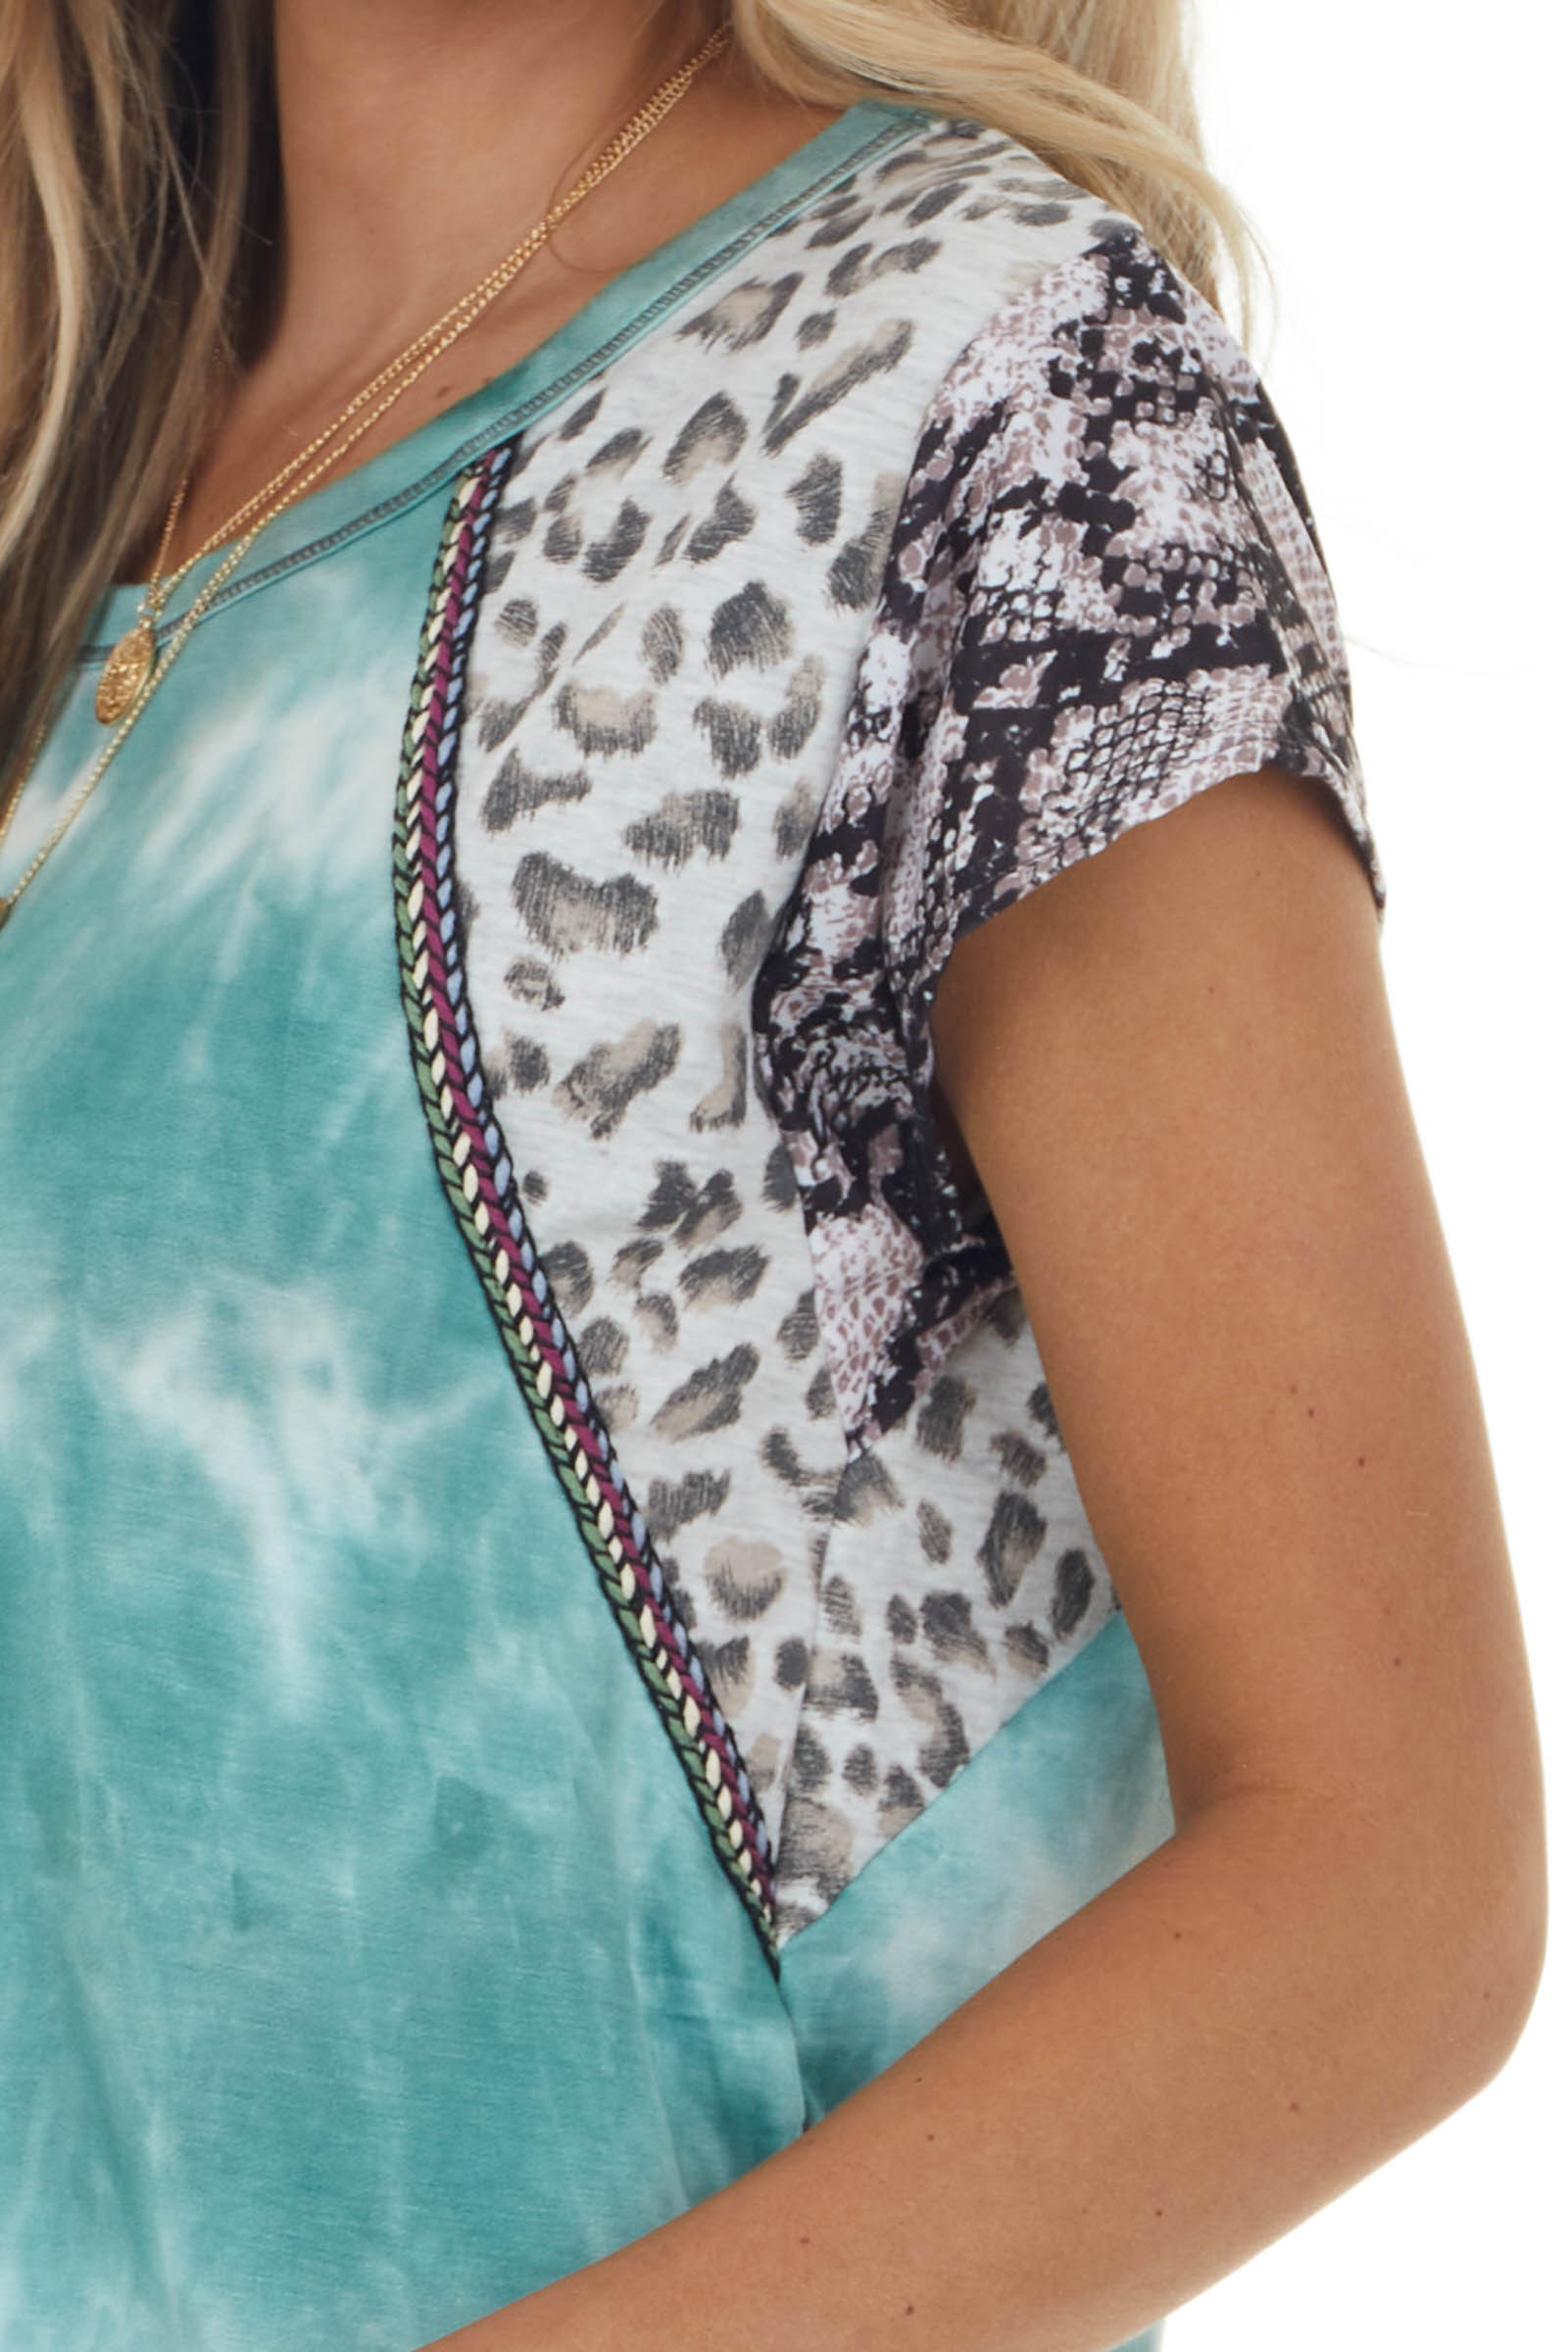 Pine Tie Dye Top with Multiprint Sleeves and Embroidery